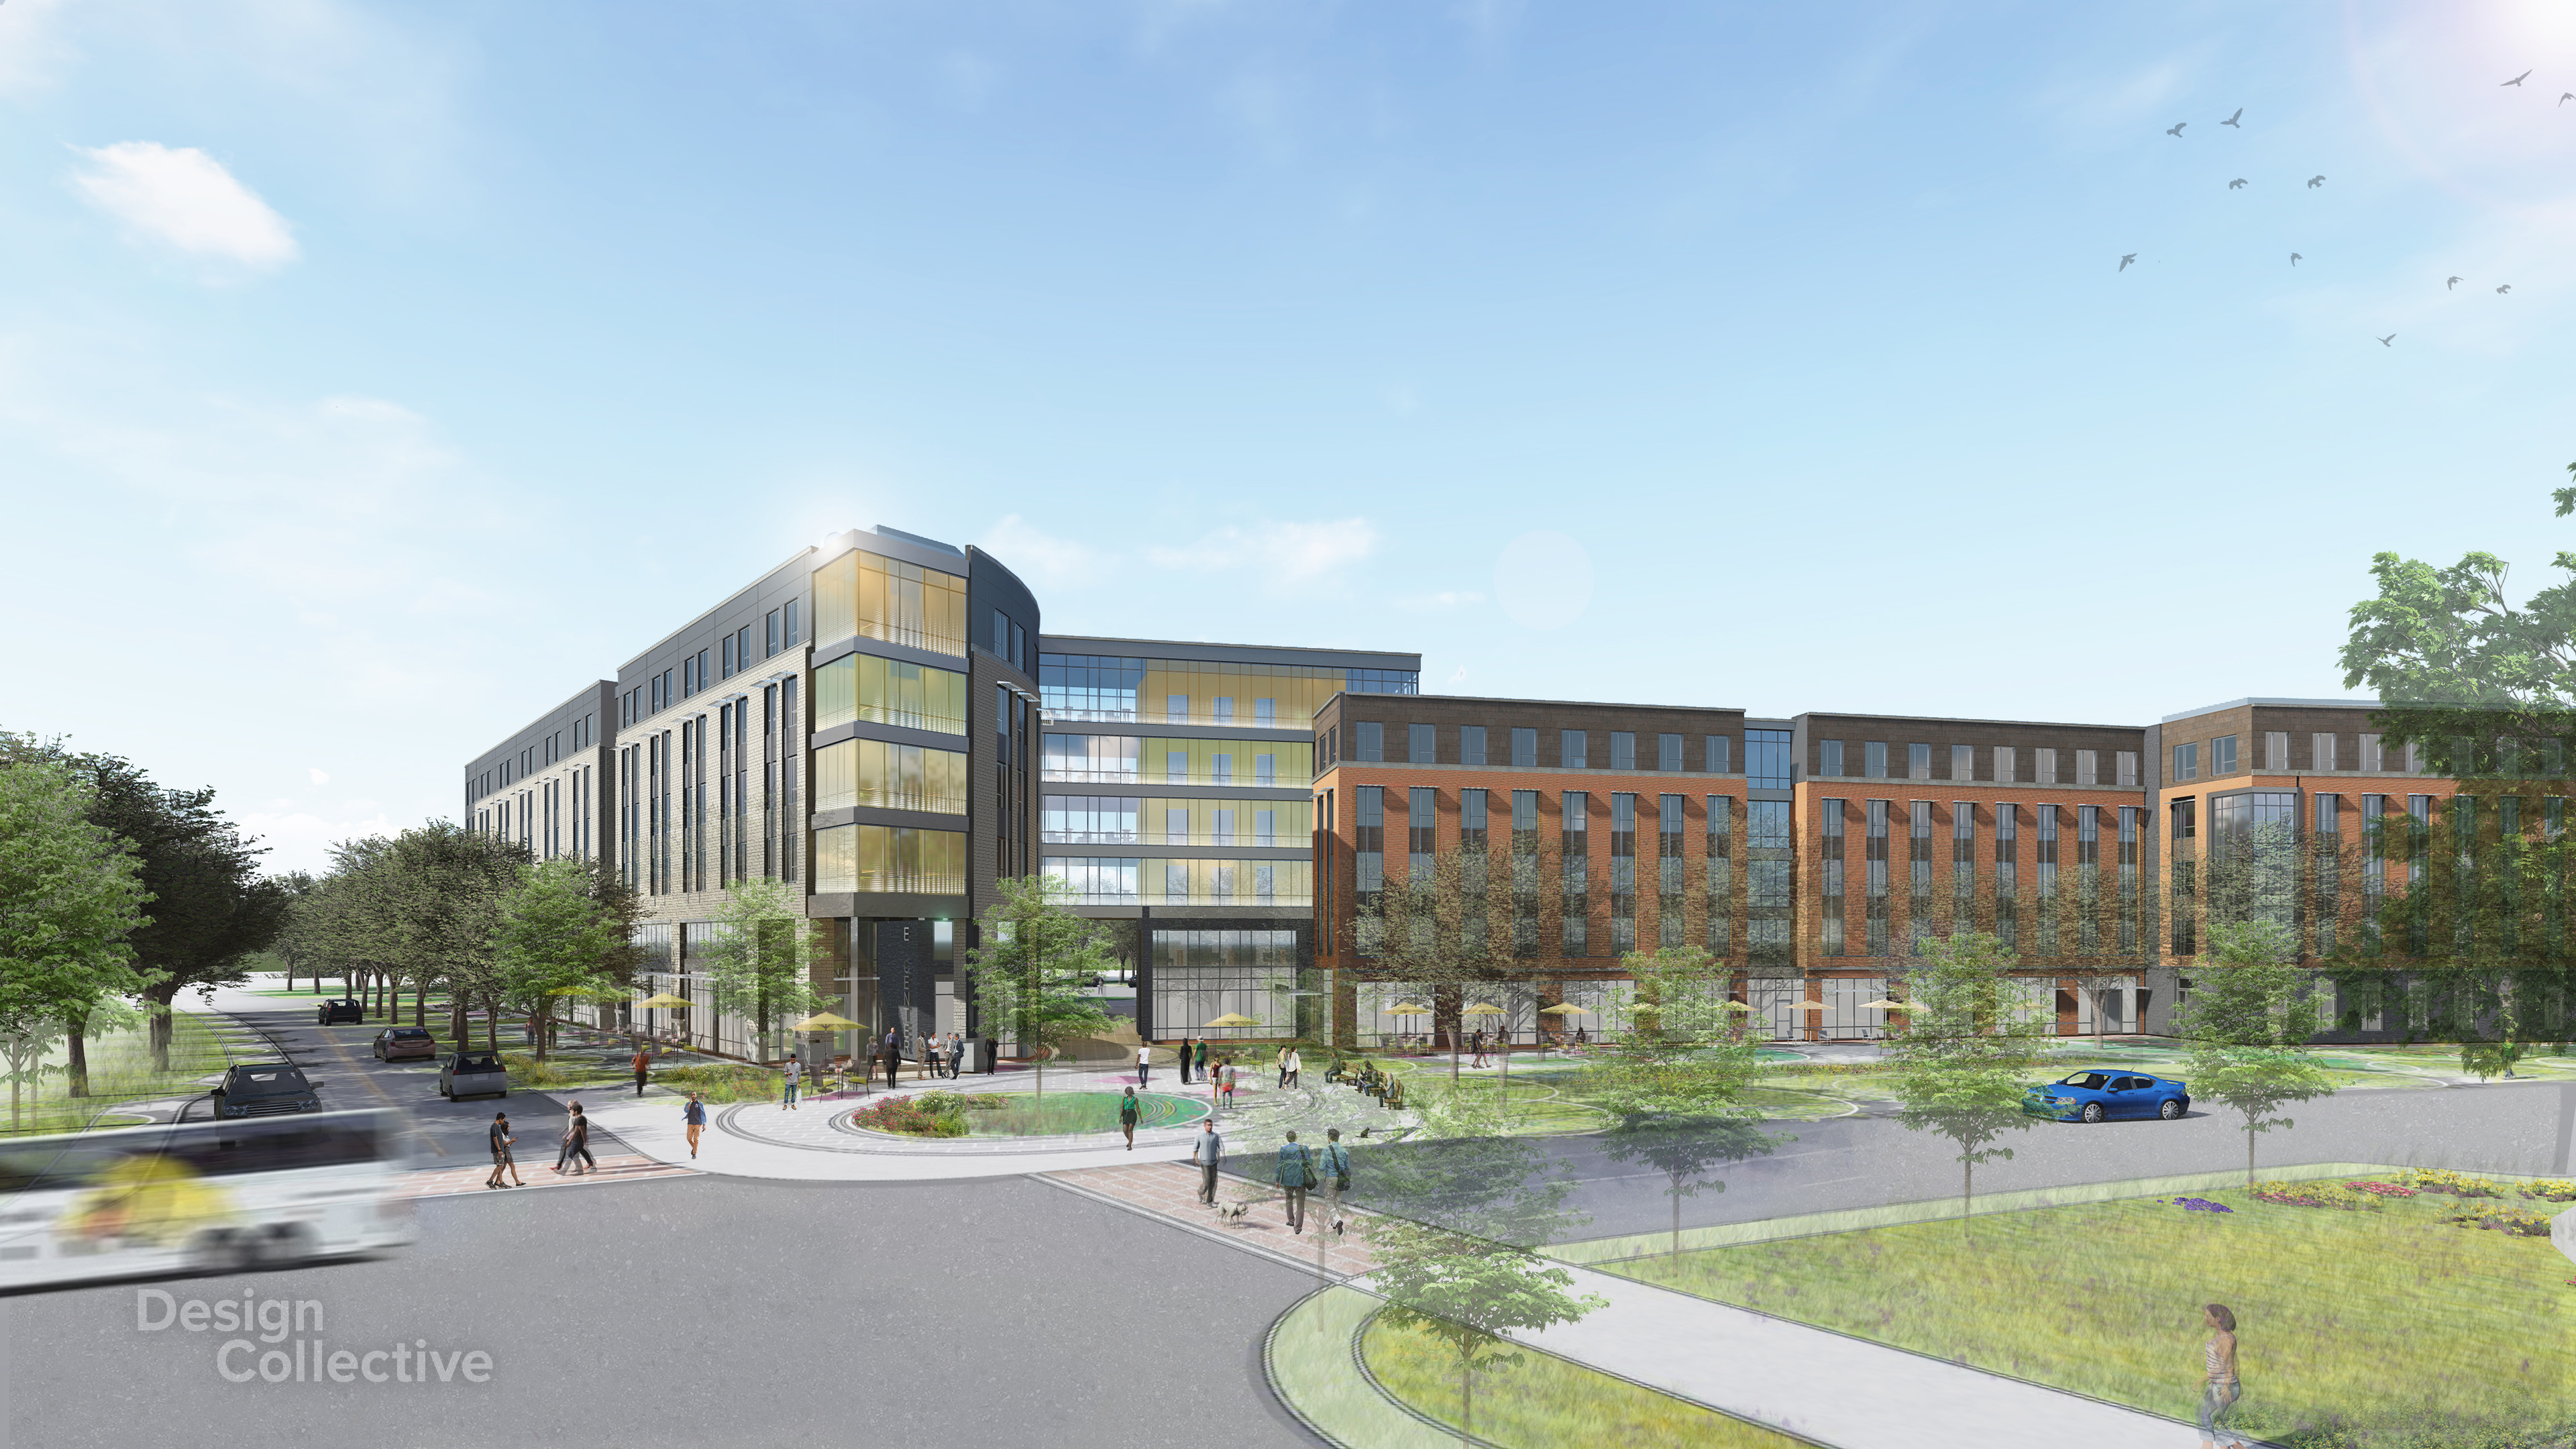 COCM Selected to Manage New Residential Living-Learning Facility at Bowie State University